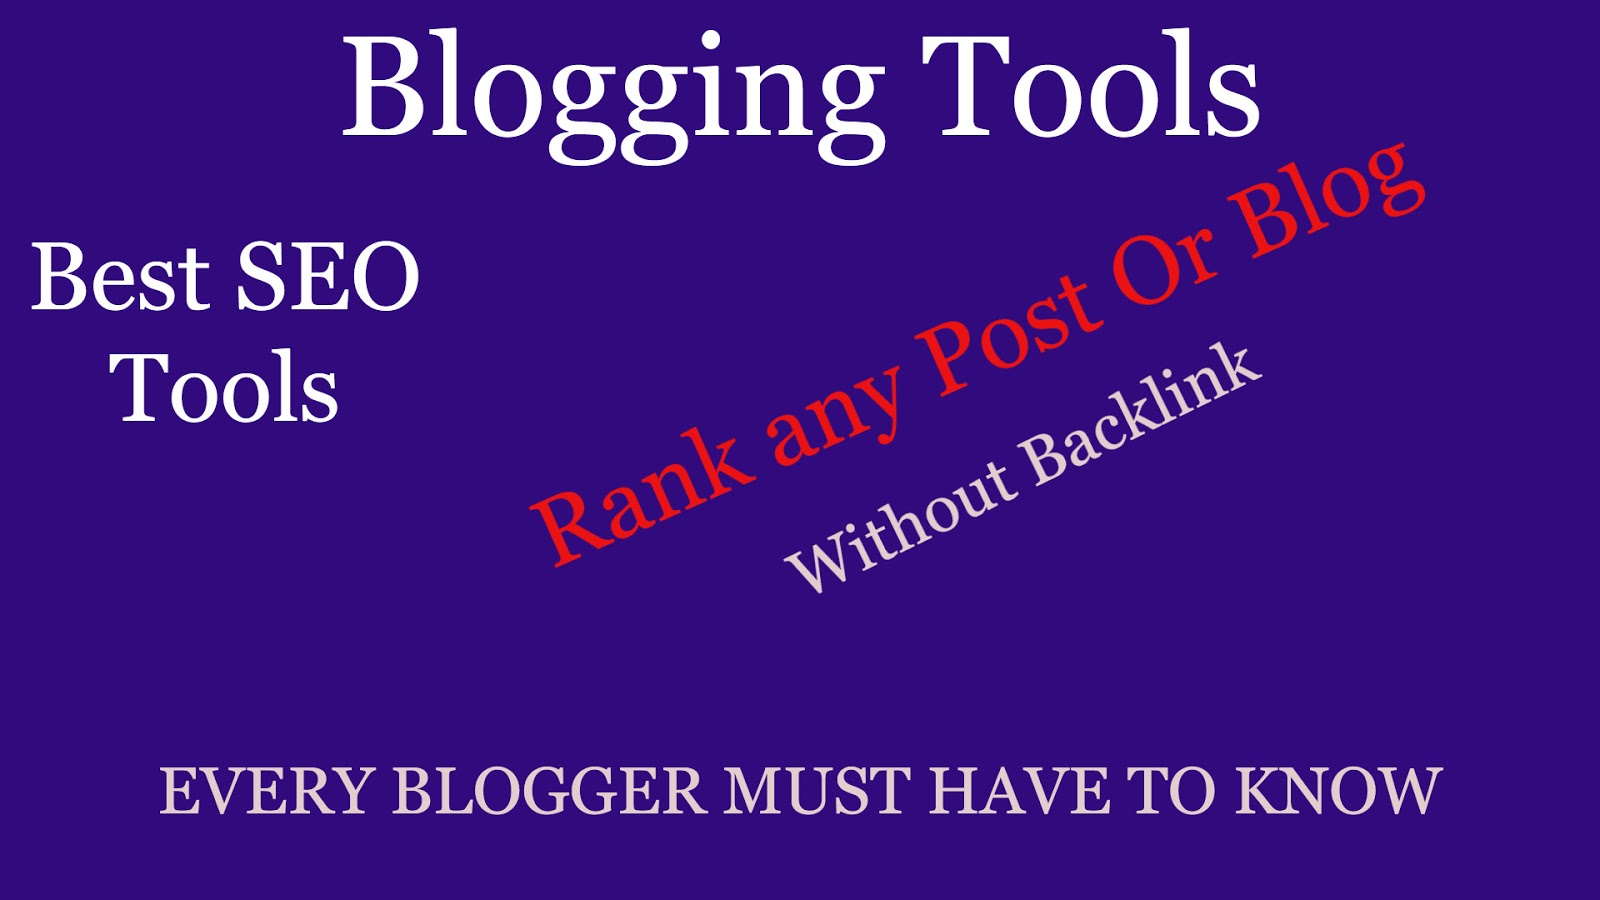 Blogging tools| Blogger SEO Tools| SEO Tips| Blog SEO Tips